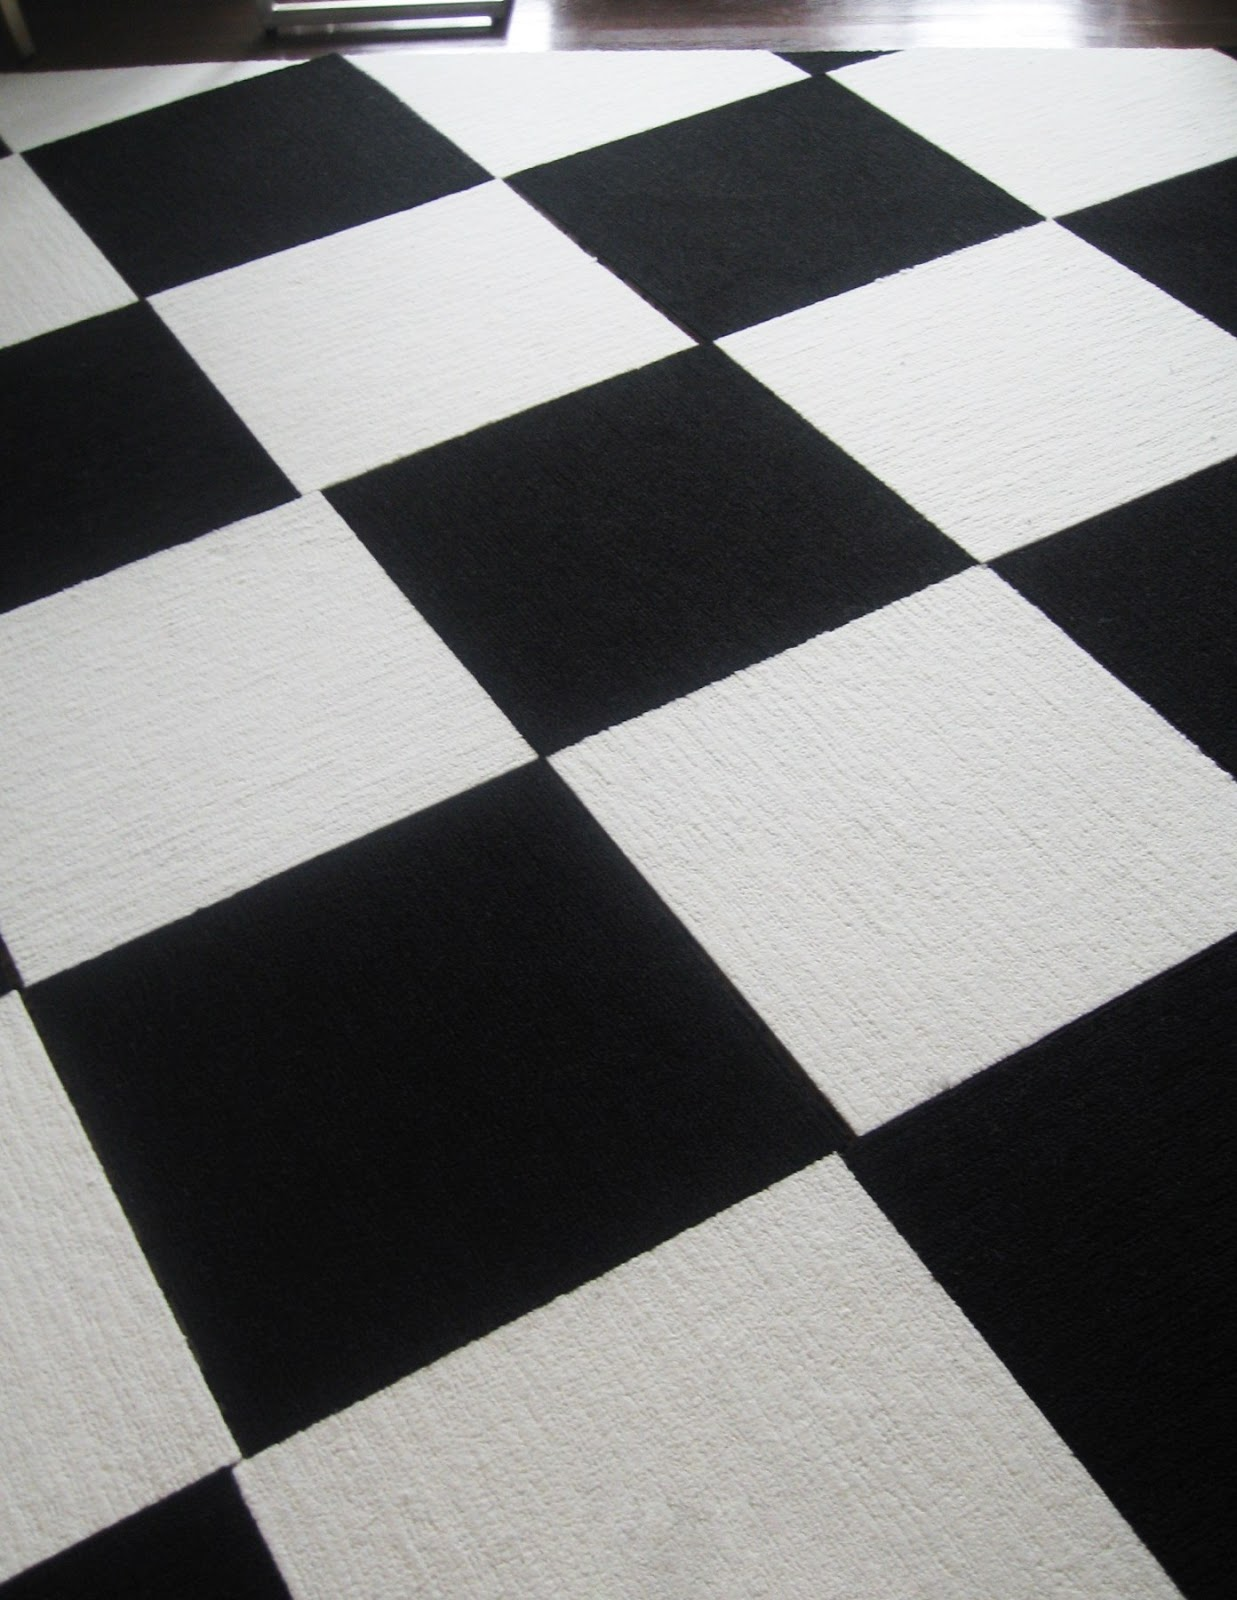 Design Flor Tiles according to braswell flor carpet tiles here is a picture of the in black white pattern as you can see edges had be cut